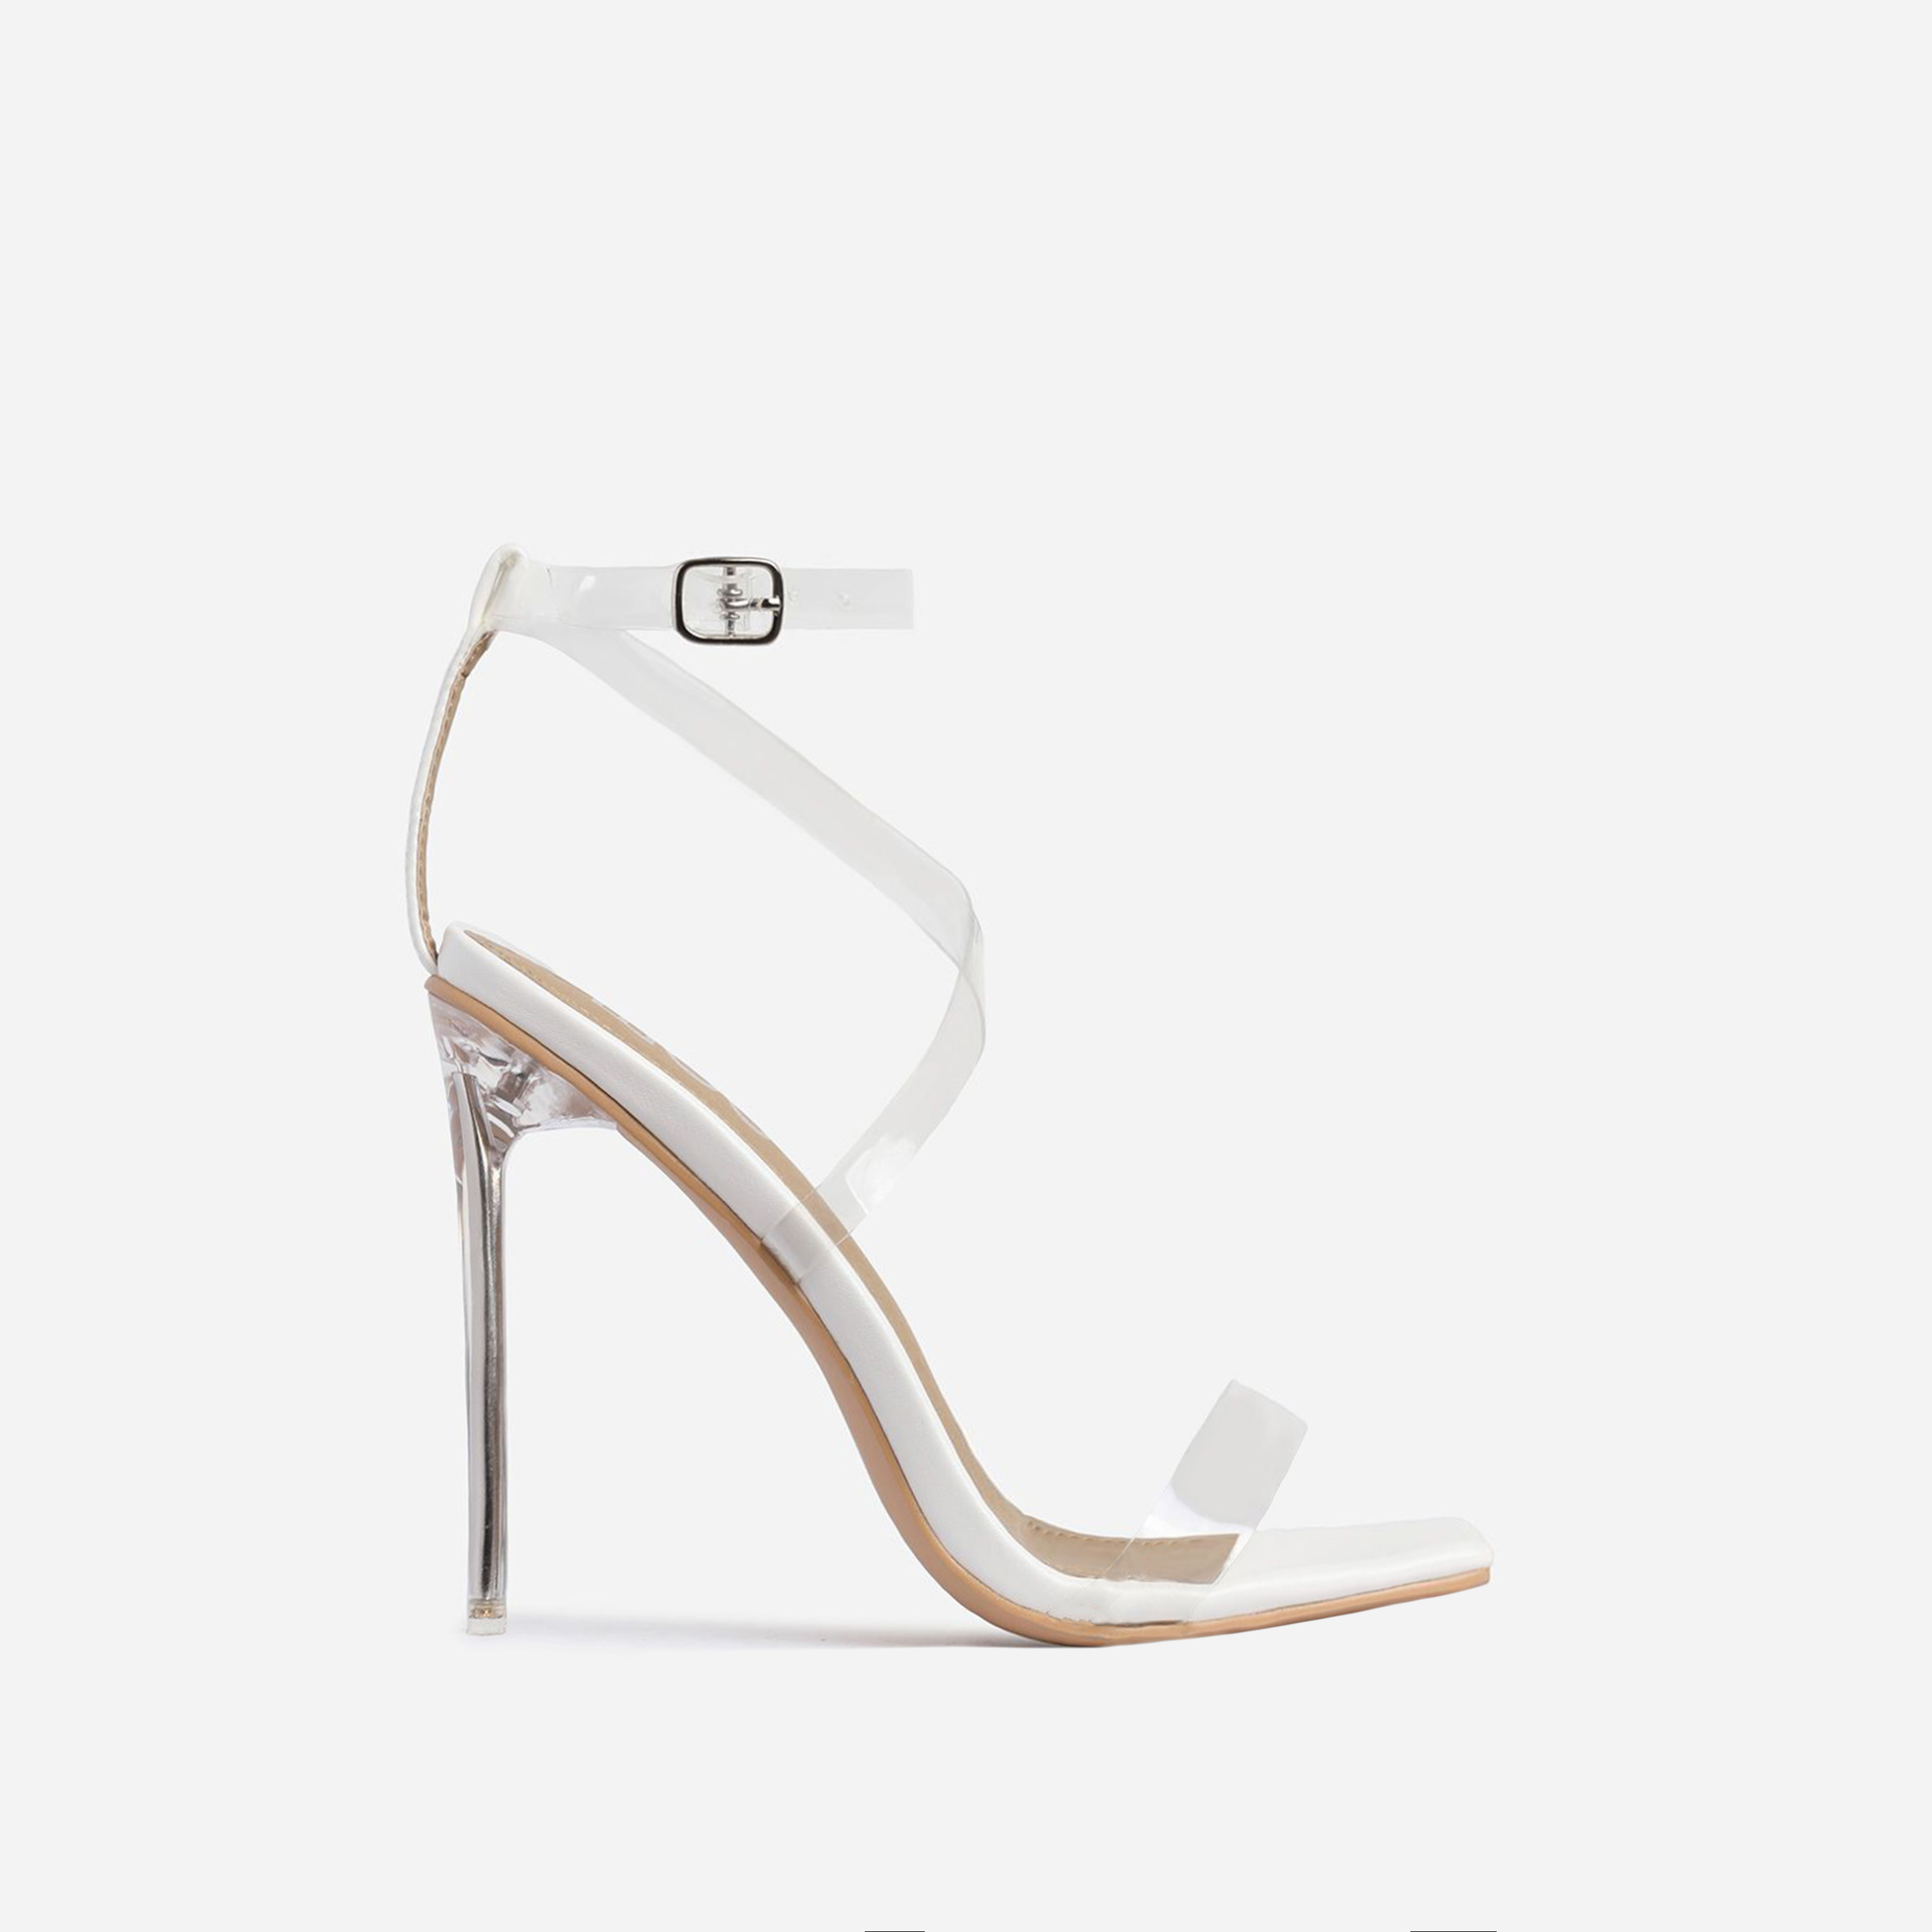 Lance Square Toe Barely There Perspex Heel In White Faux Leather